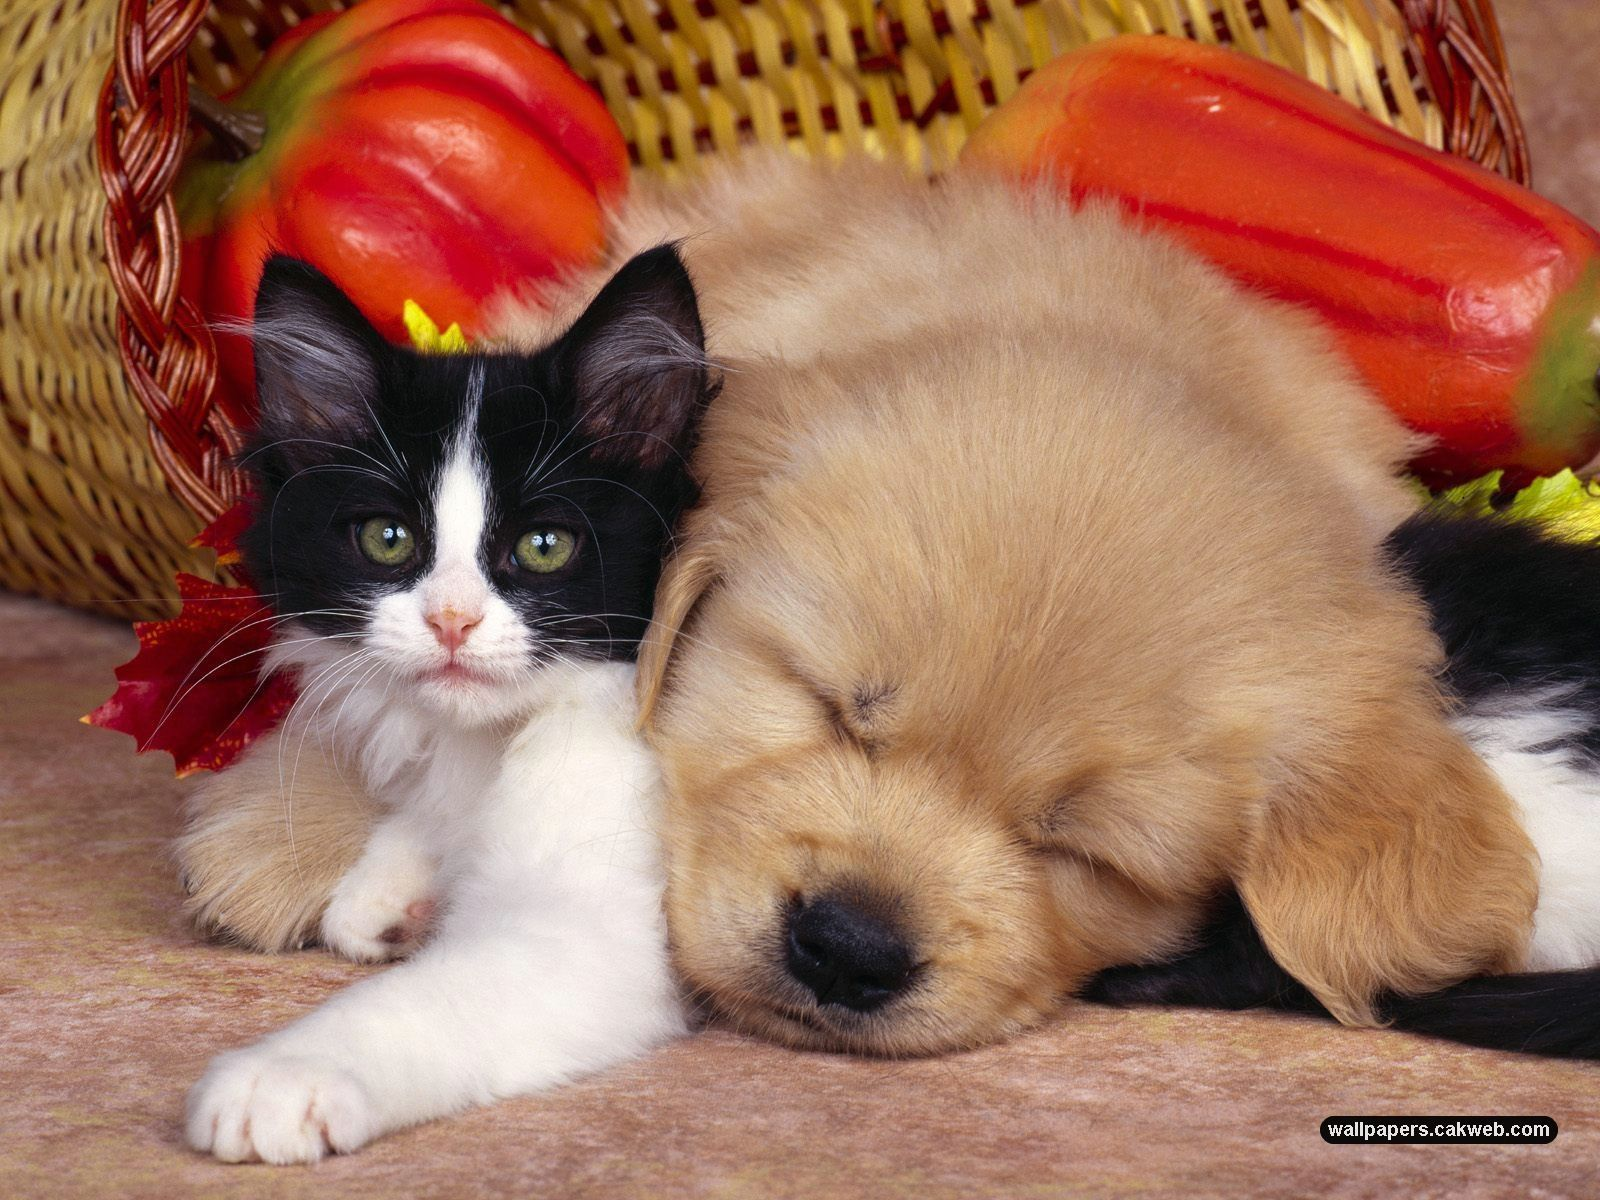 Astounding funny cats and dogs pictures together together